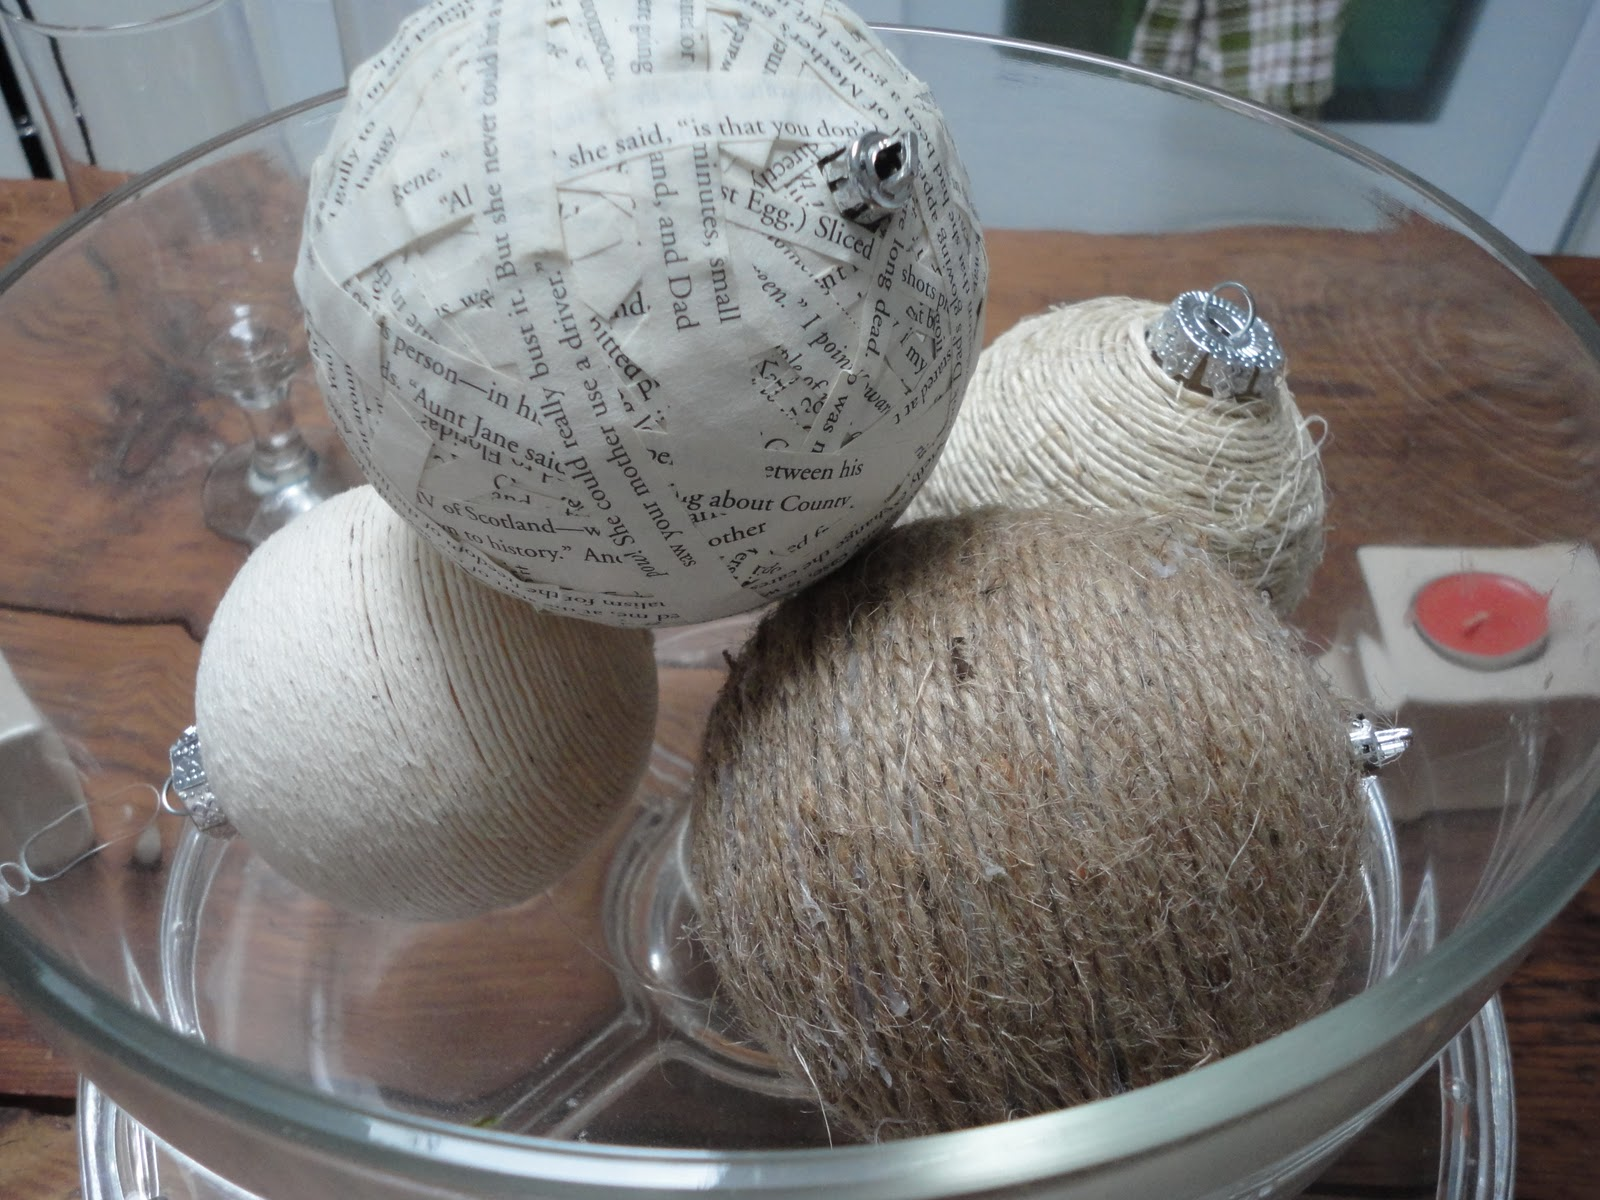 Paper mache ornaments -  Paper Into The Glue Mixture And Place On Your Ball Ornament Let Dry Overnight And There You Have It Very Fun Cheap And An Unique Way To Update A